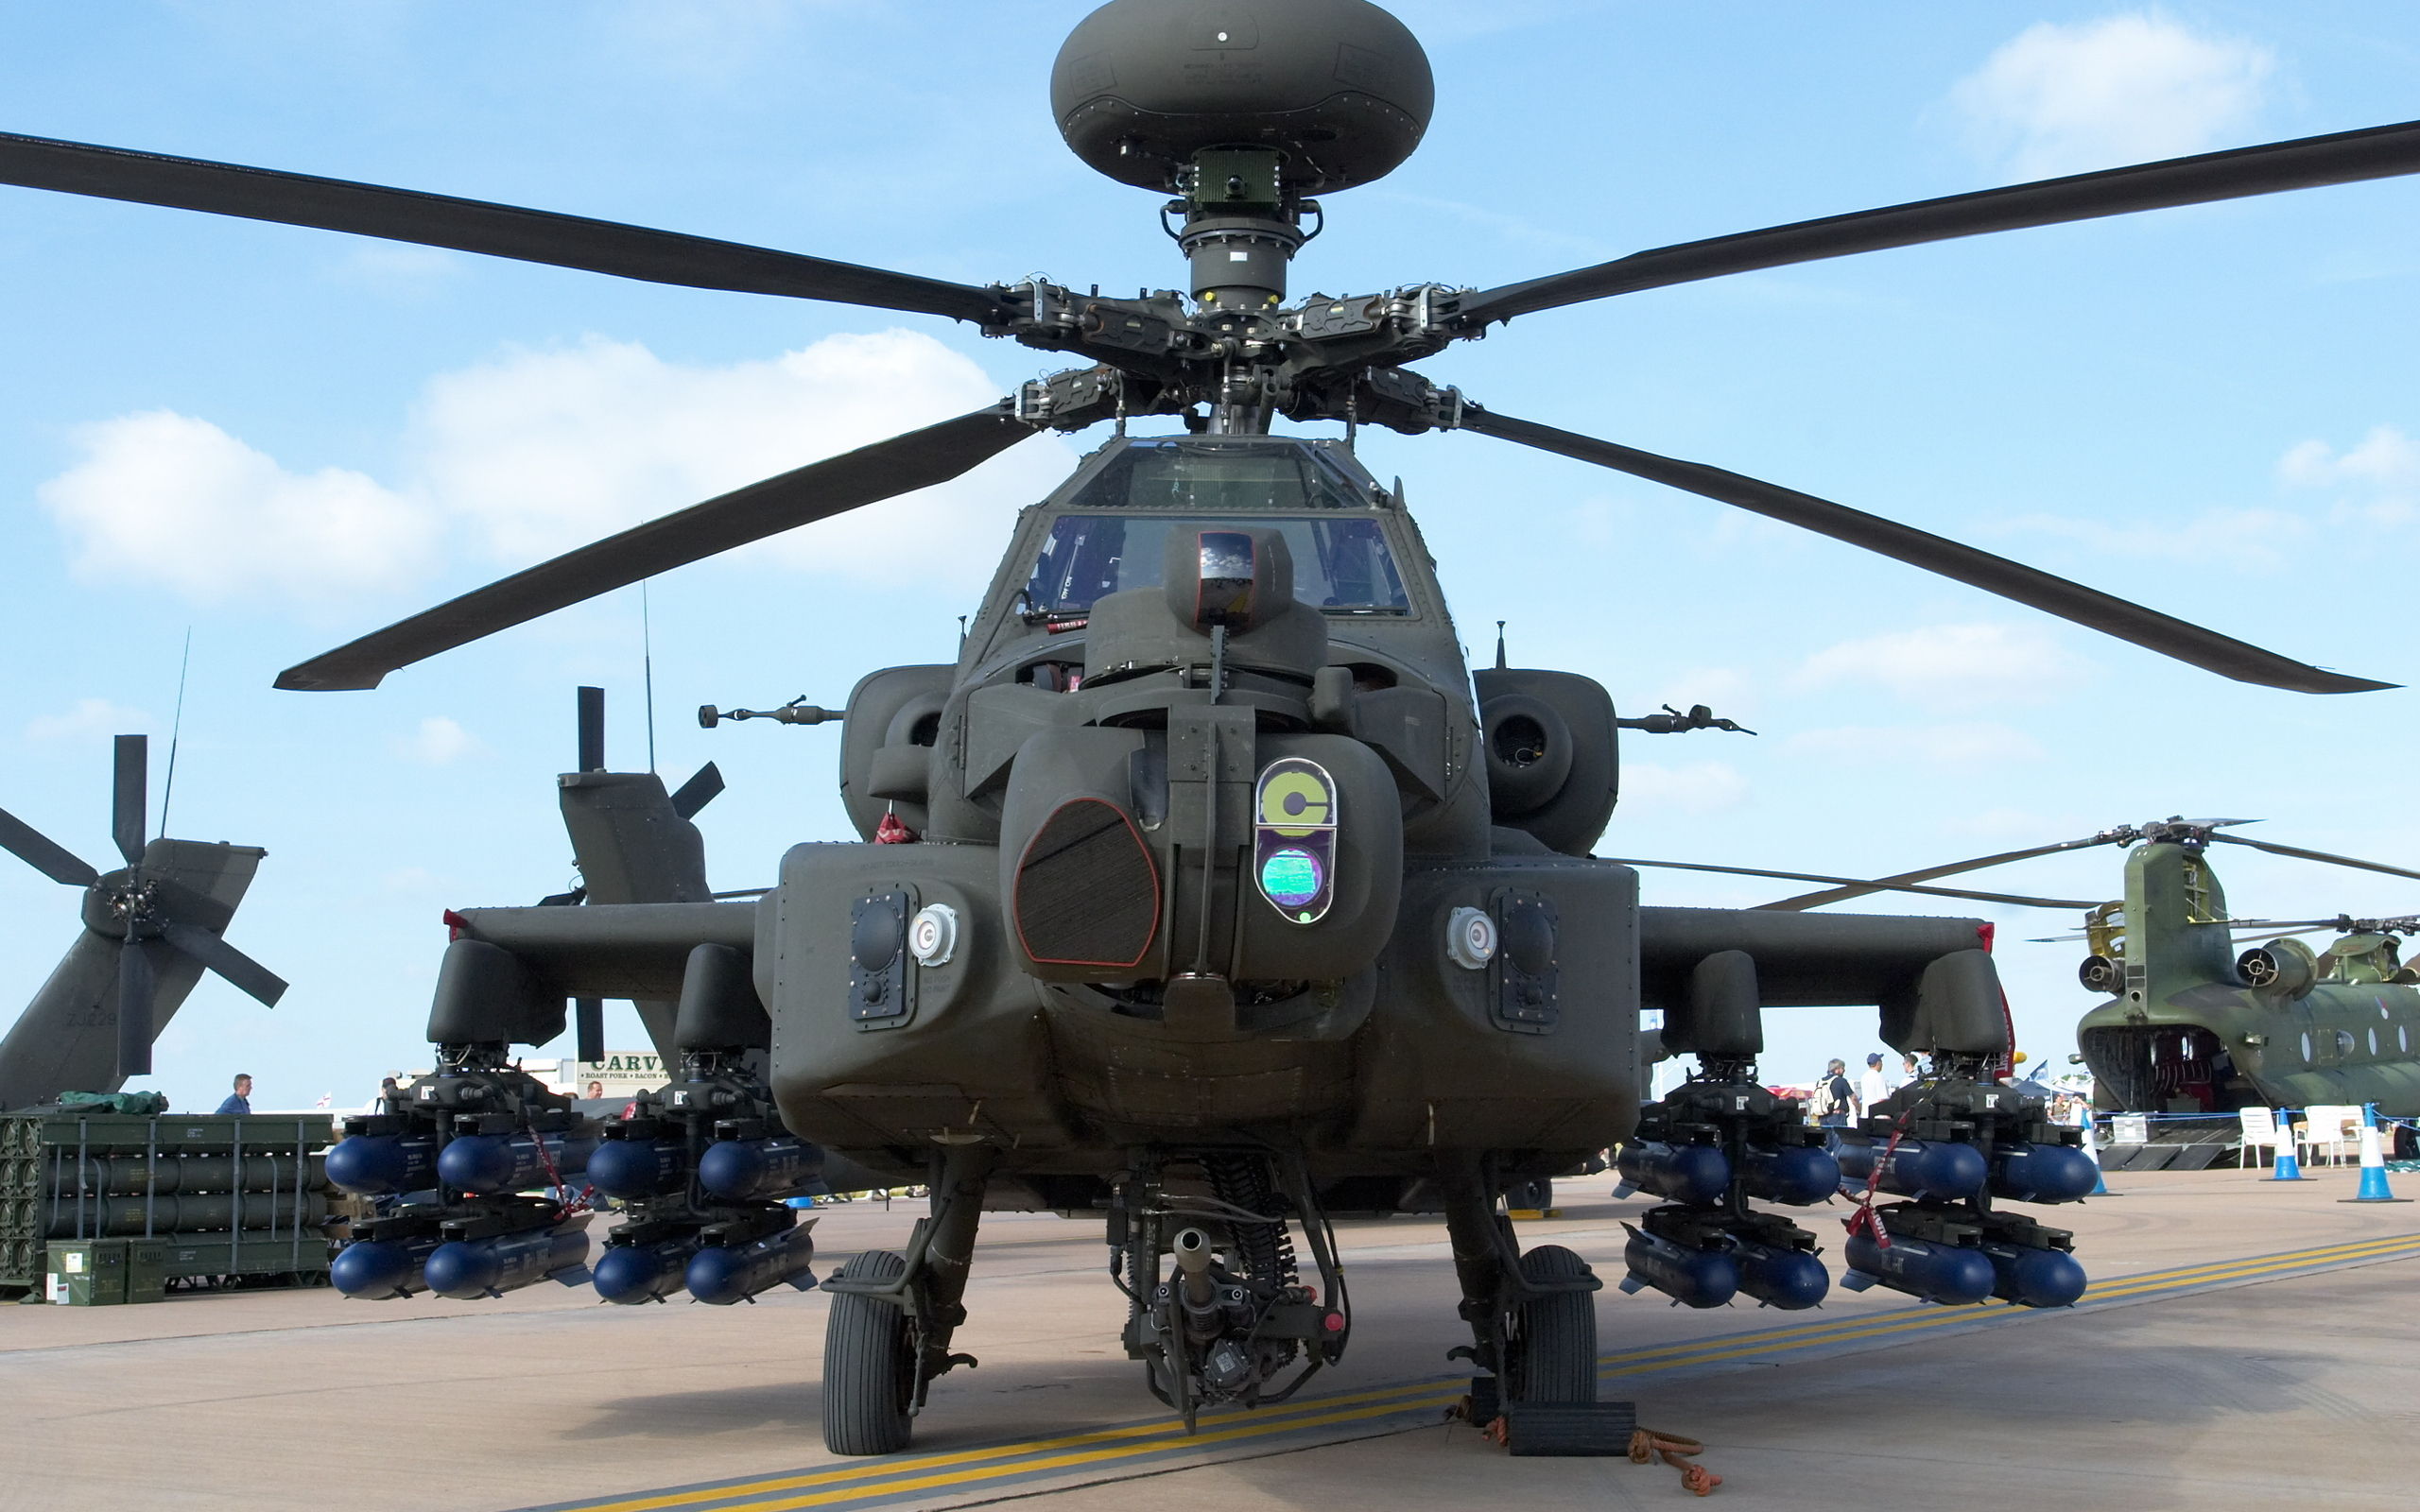 helicopter apache with By Sub Category on IDF To Re mend Boeing Helicopter Over Sikorsky 544202 in addition By sub category also File LEGO AH 64 Apache furthermore Tornado GR4 Aircraft At Night 3840x2160 together with Wz10 Helicopter China.